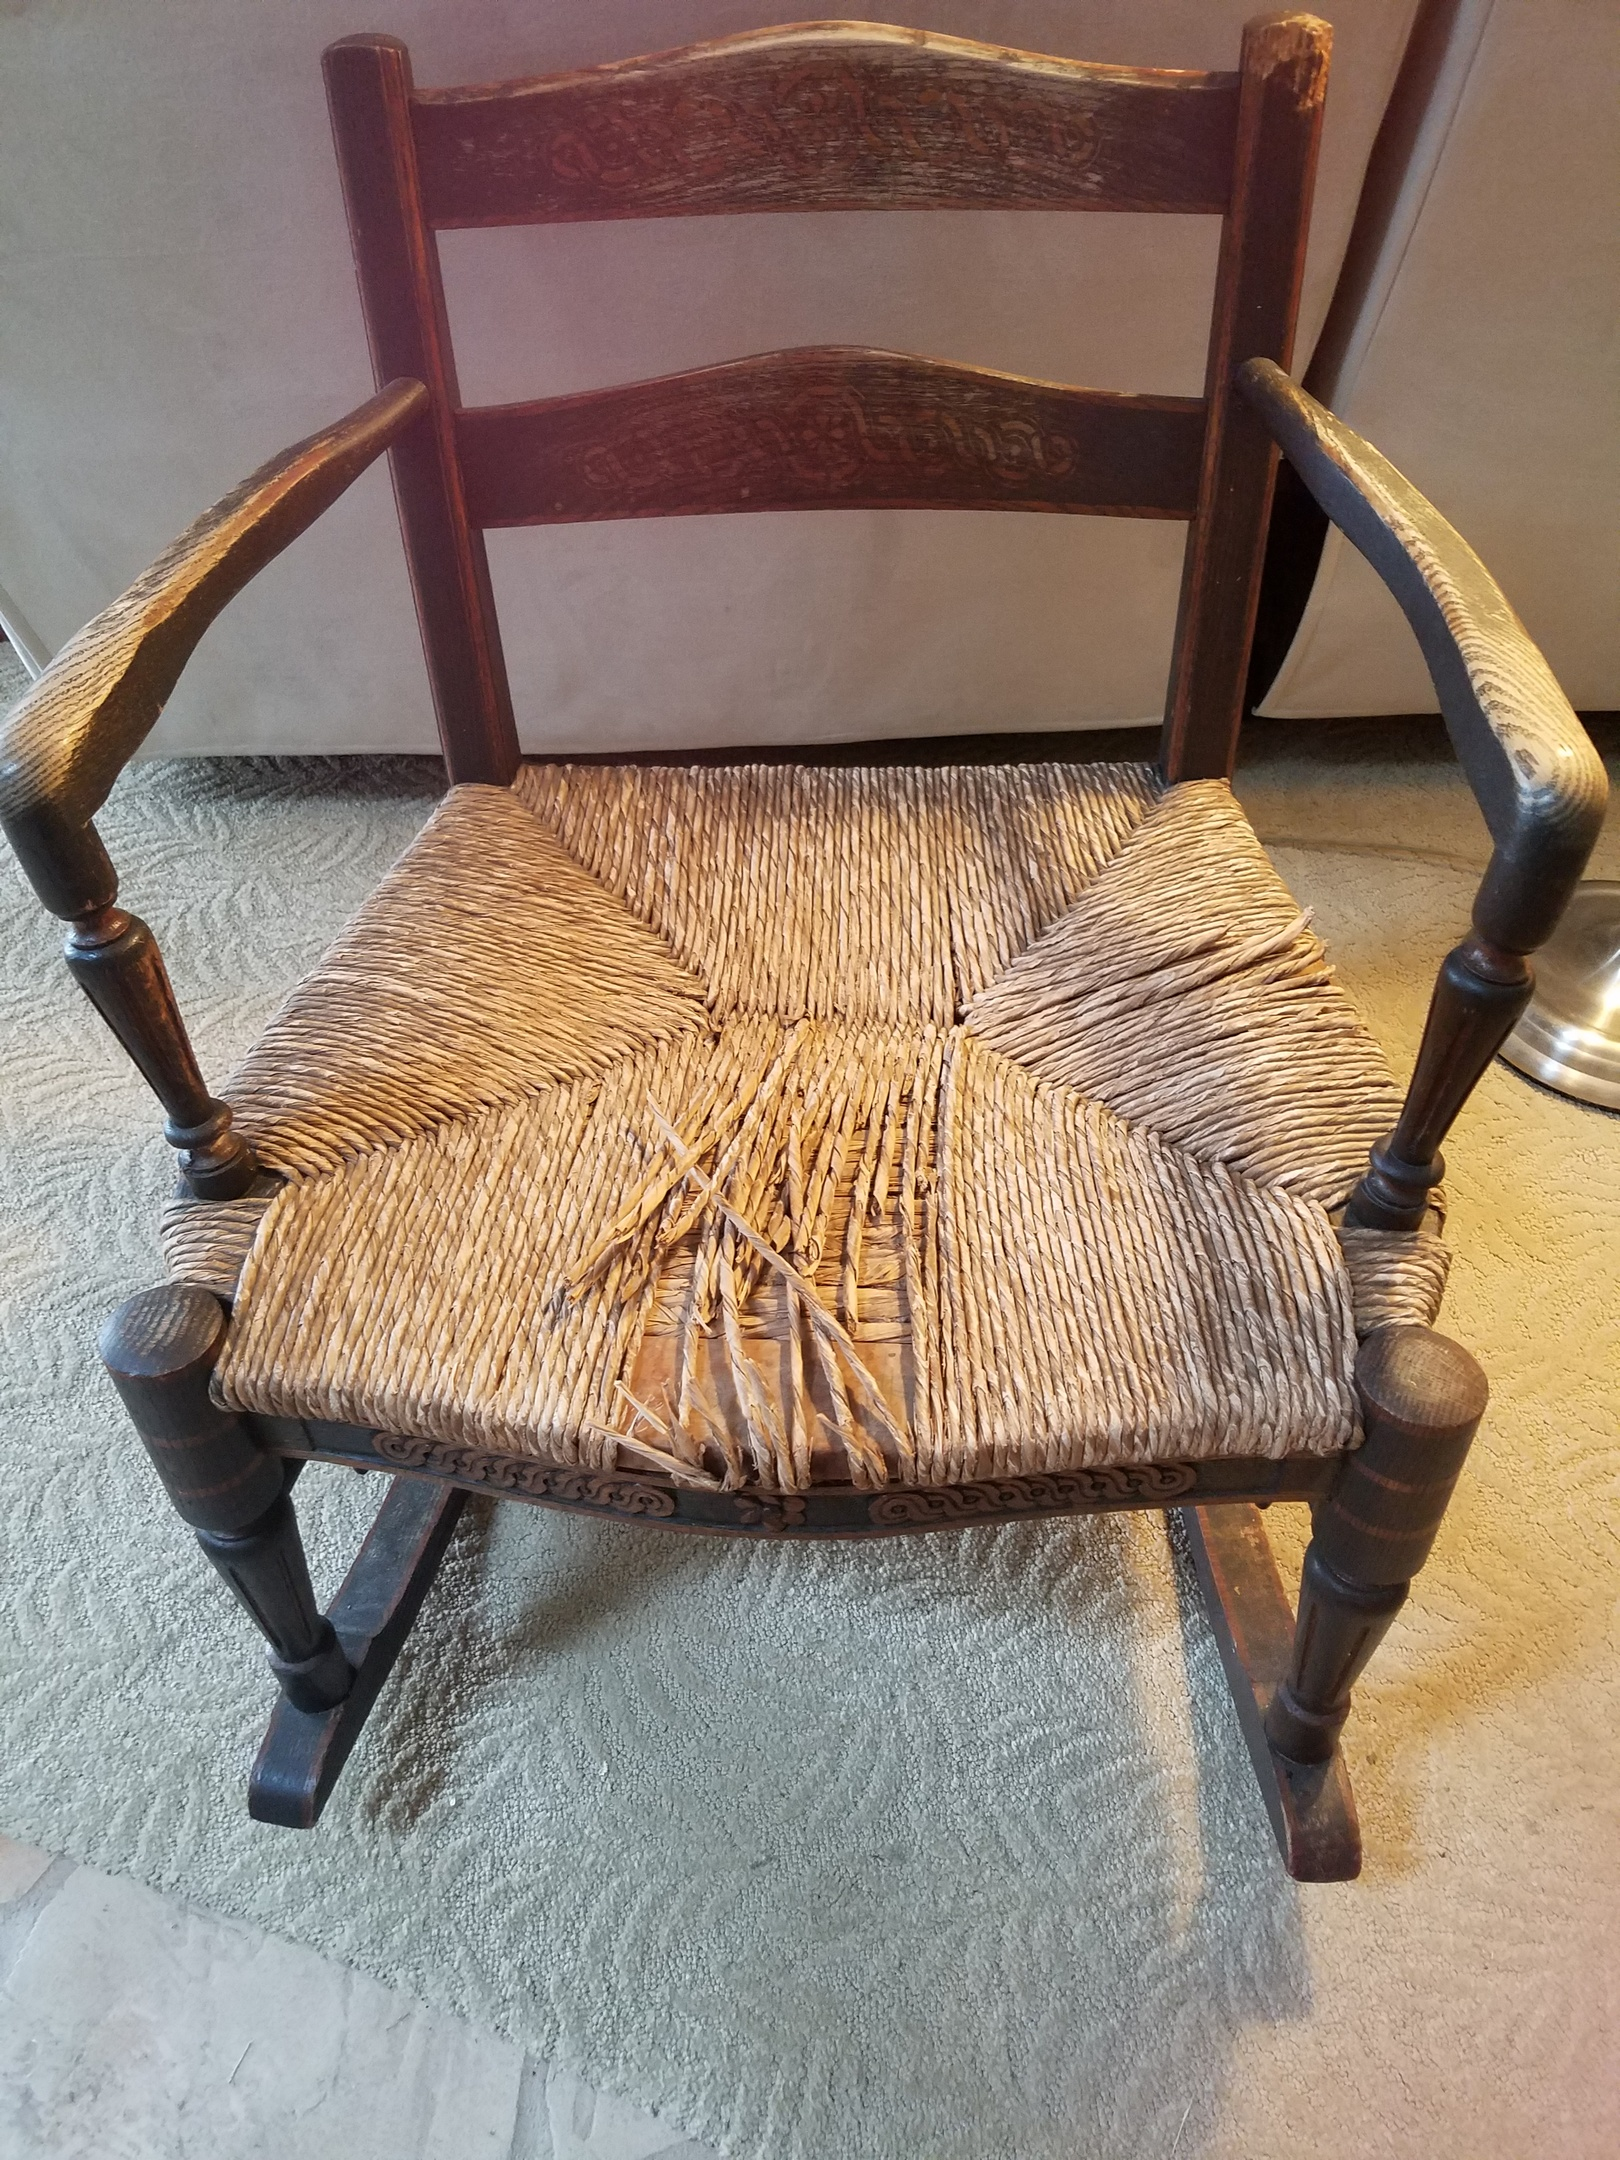 Phenomenal Sussex Chair Old Wooden Rocking Chair With Interesting Ncnpc Chair Design For Home Ncnpcorg